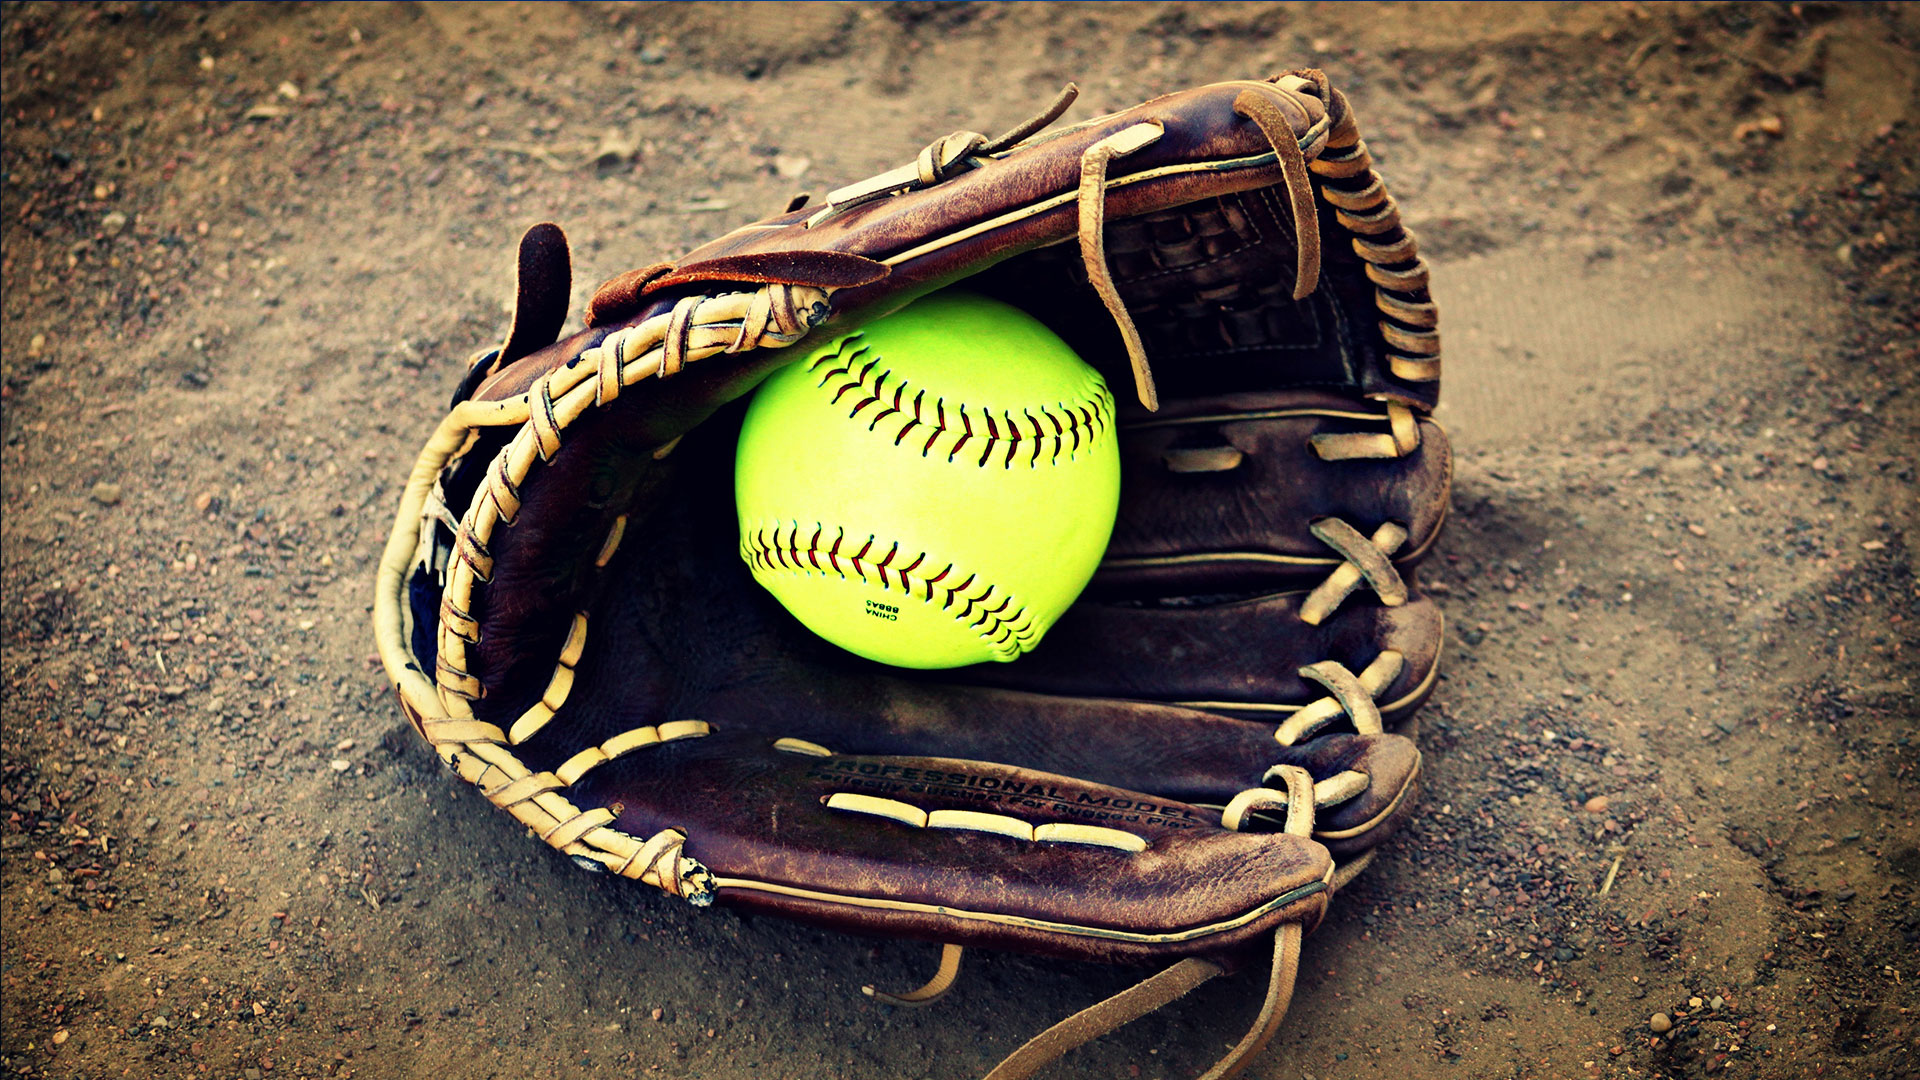 KELO-sports-generic-softball-2_1529437991135.jpg